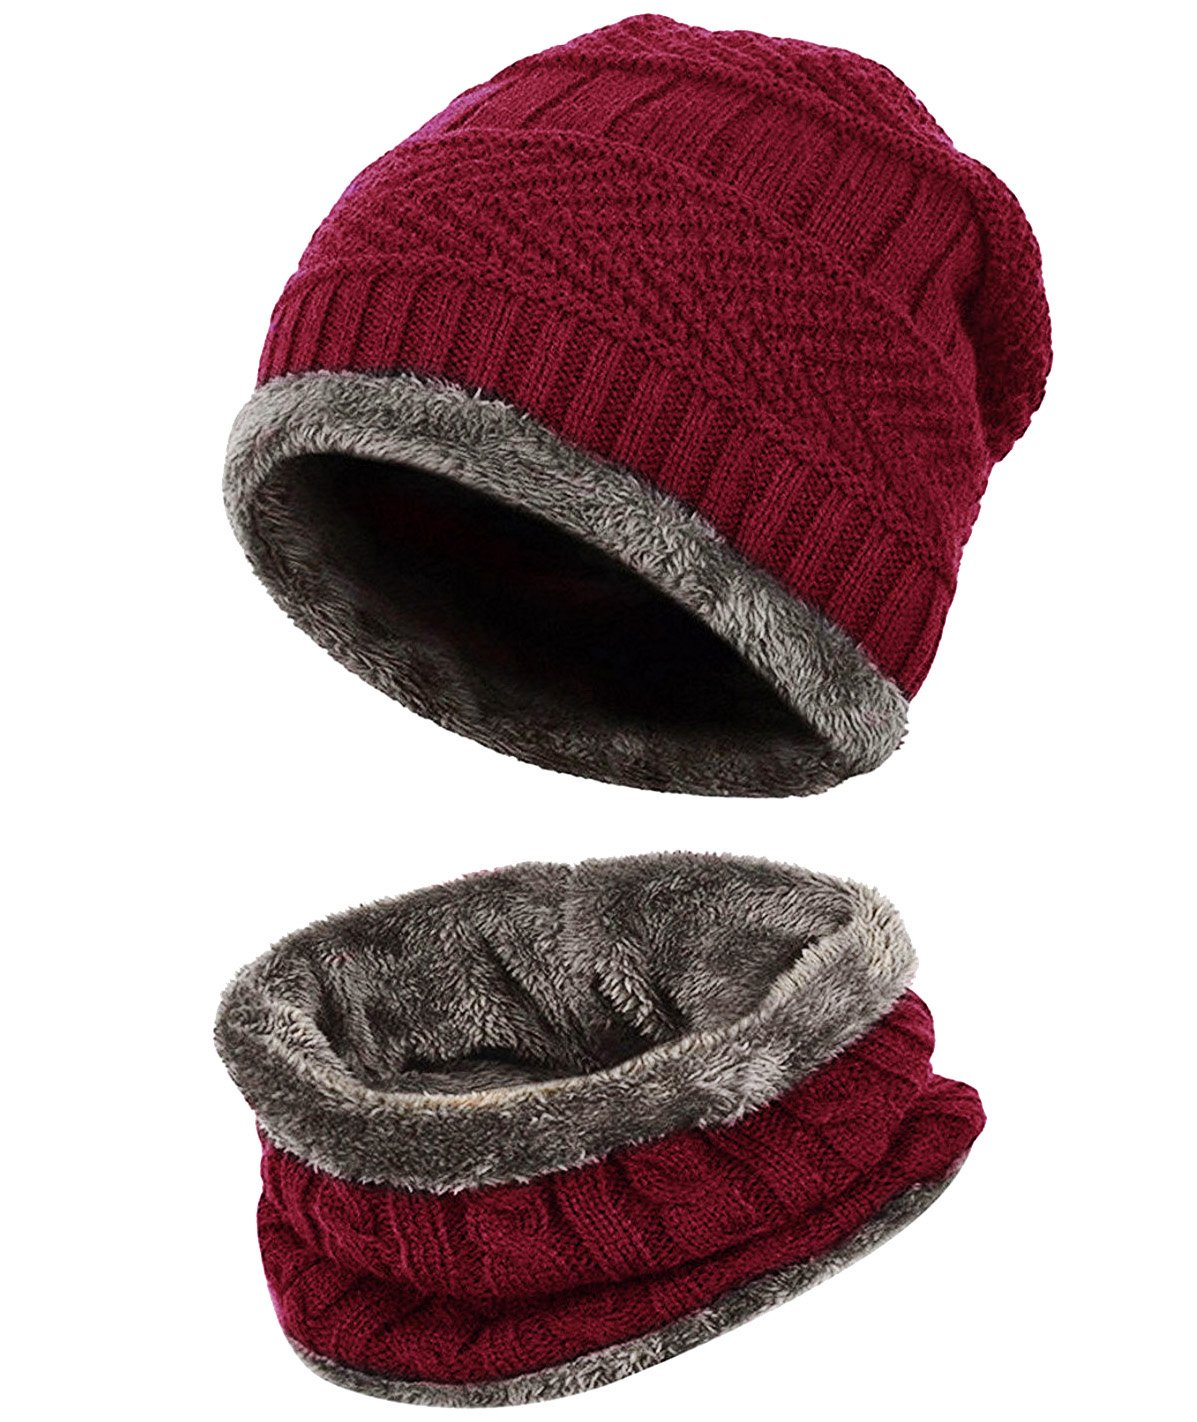 1bb3eb7293a Loritta Men Beanie Hat Scarf Set Winter Warm Knit Hat and Infinity Scarf  Gift Set product